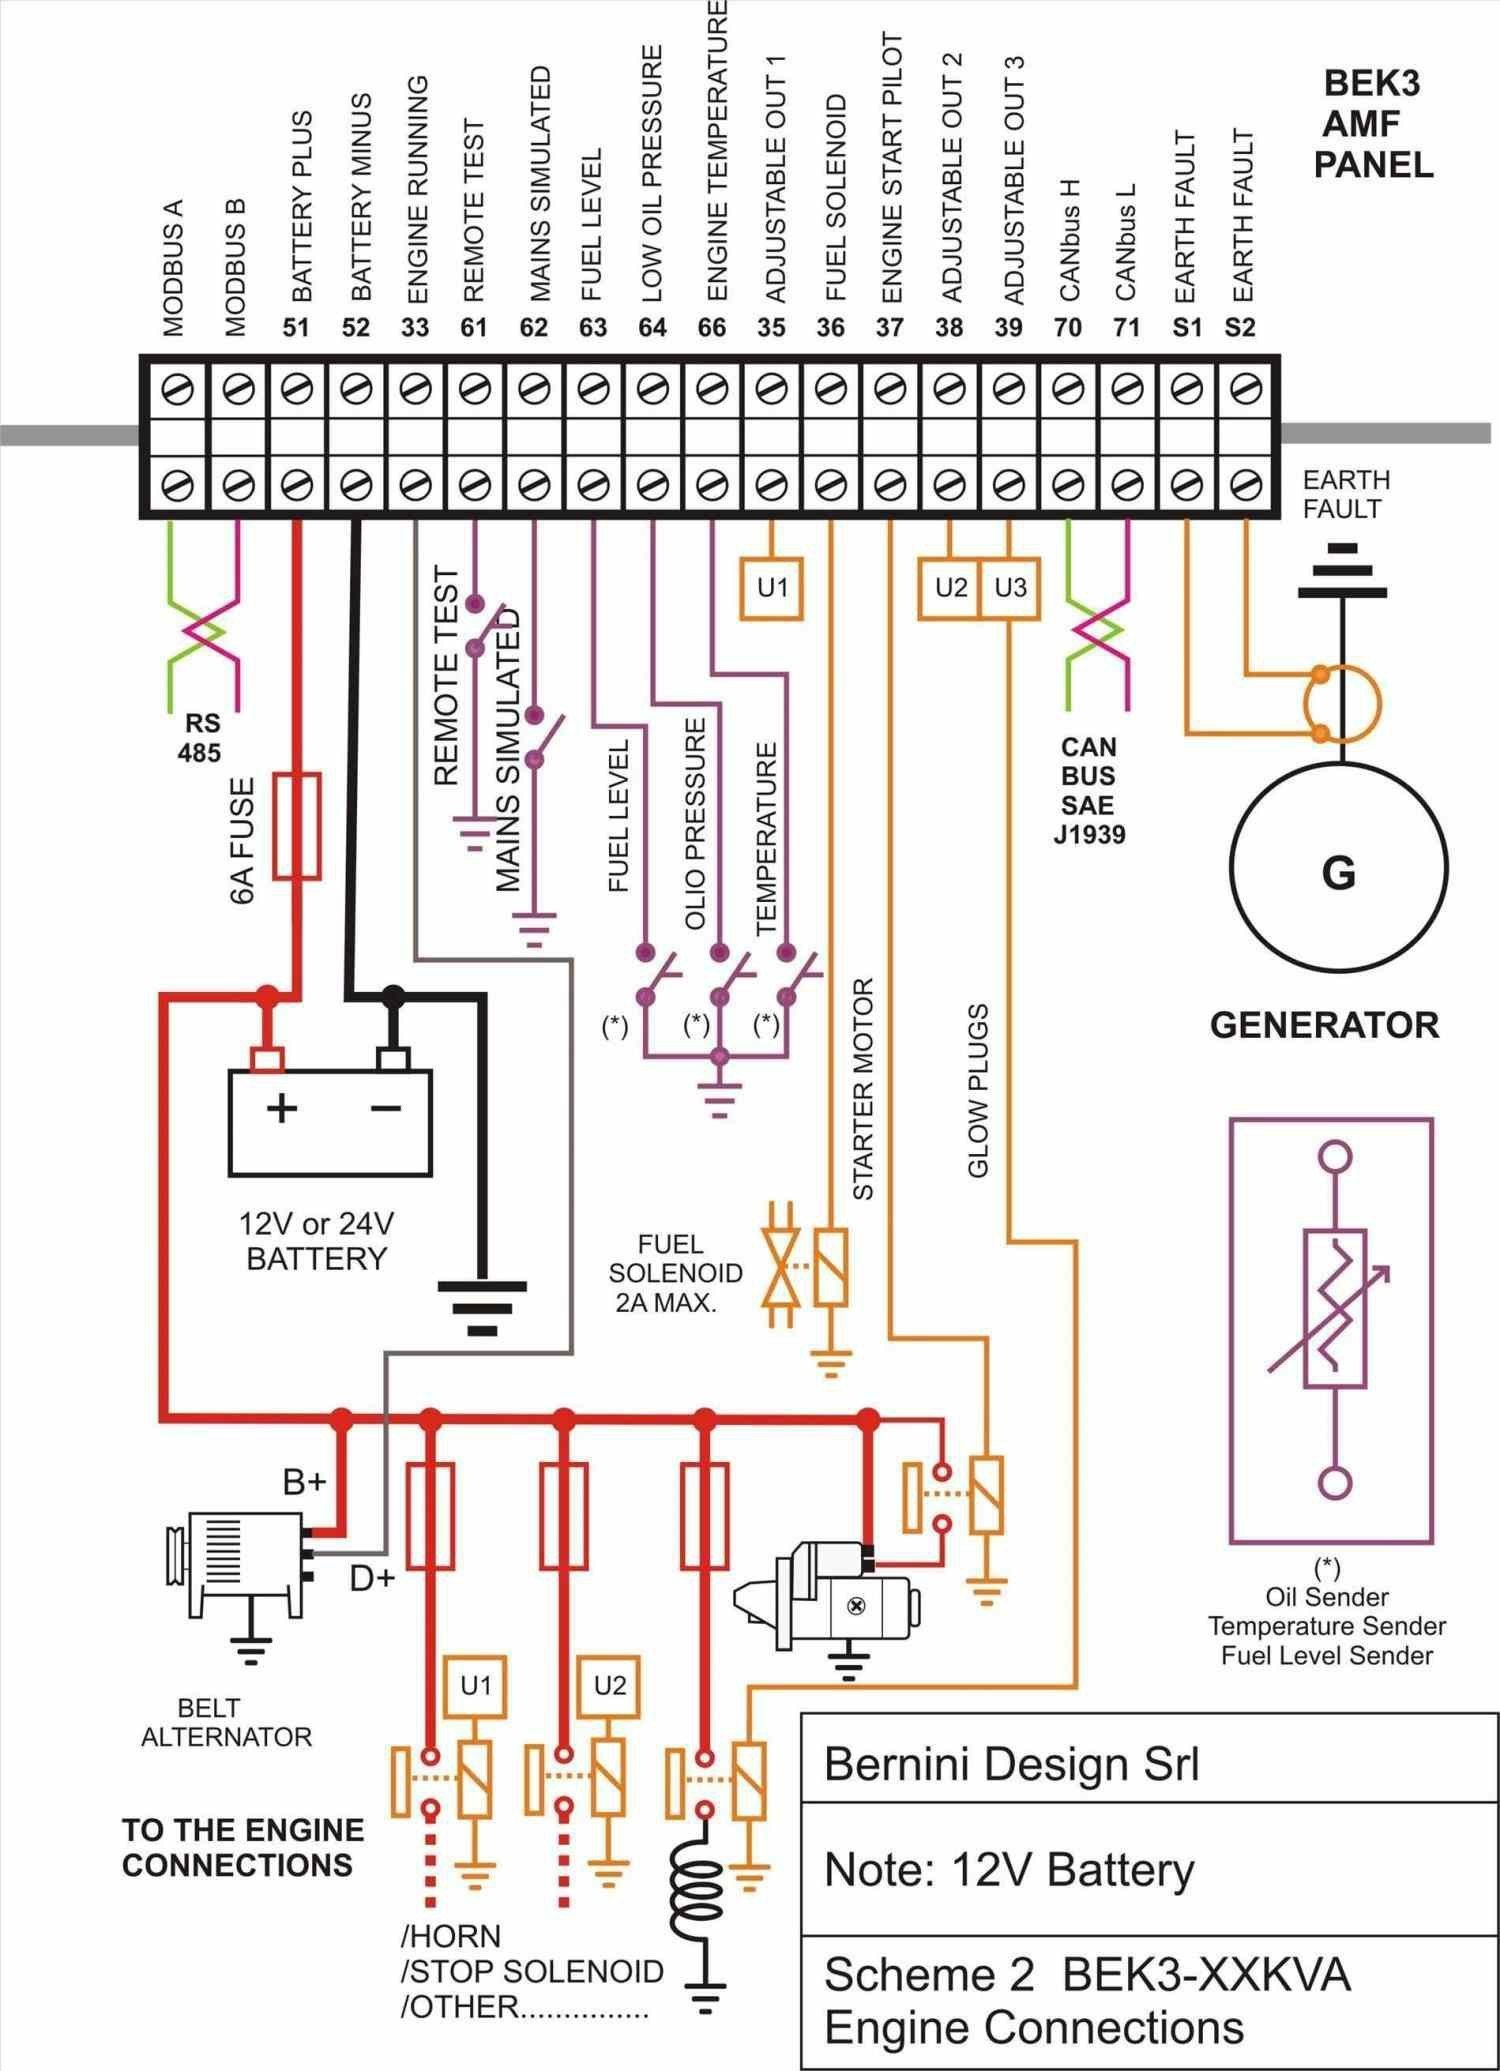 hight resolution of lennox g10 furnace wiring diagram wiring diagrams schemaconcord furnace wiring diagram wiring diagrams schema johnson controls